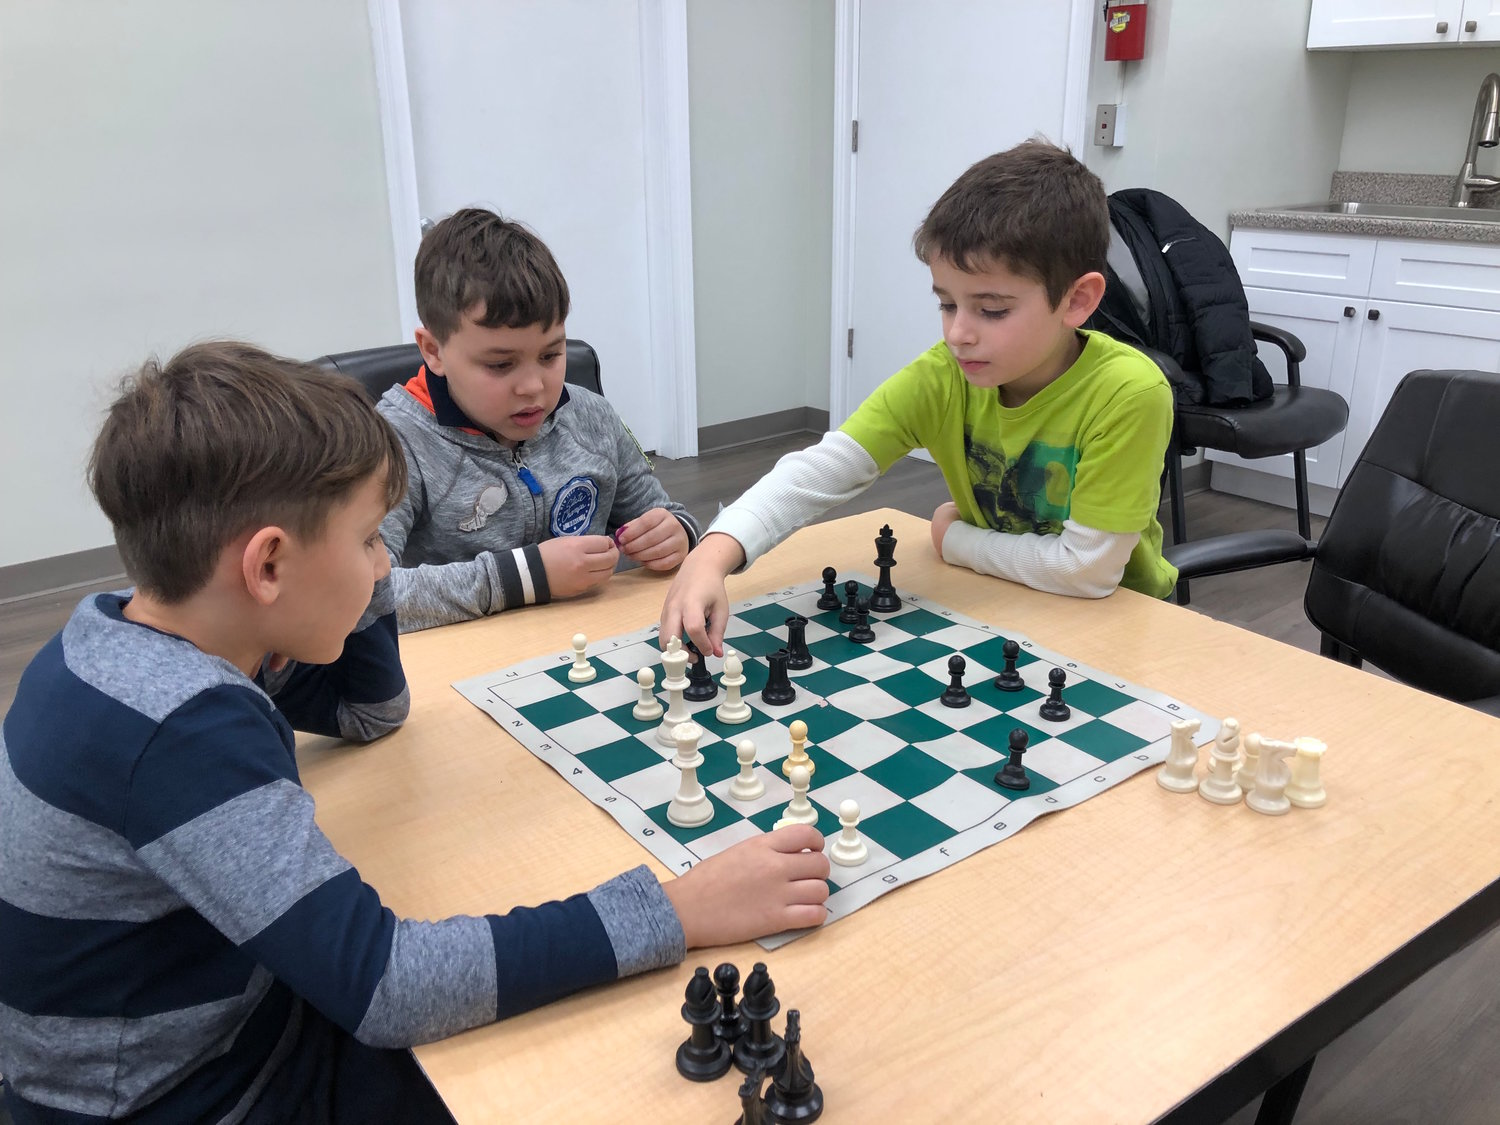 The JCC's Chess Club is challenging and fun. Michael Abelev, right, made his move against Nathaniel Shamalov, left, as Marat Ustinovich oversaw the match.